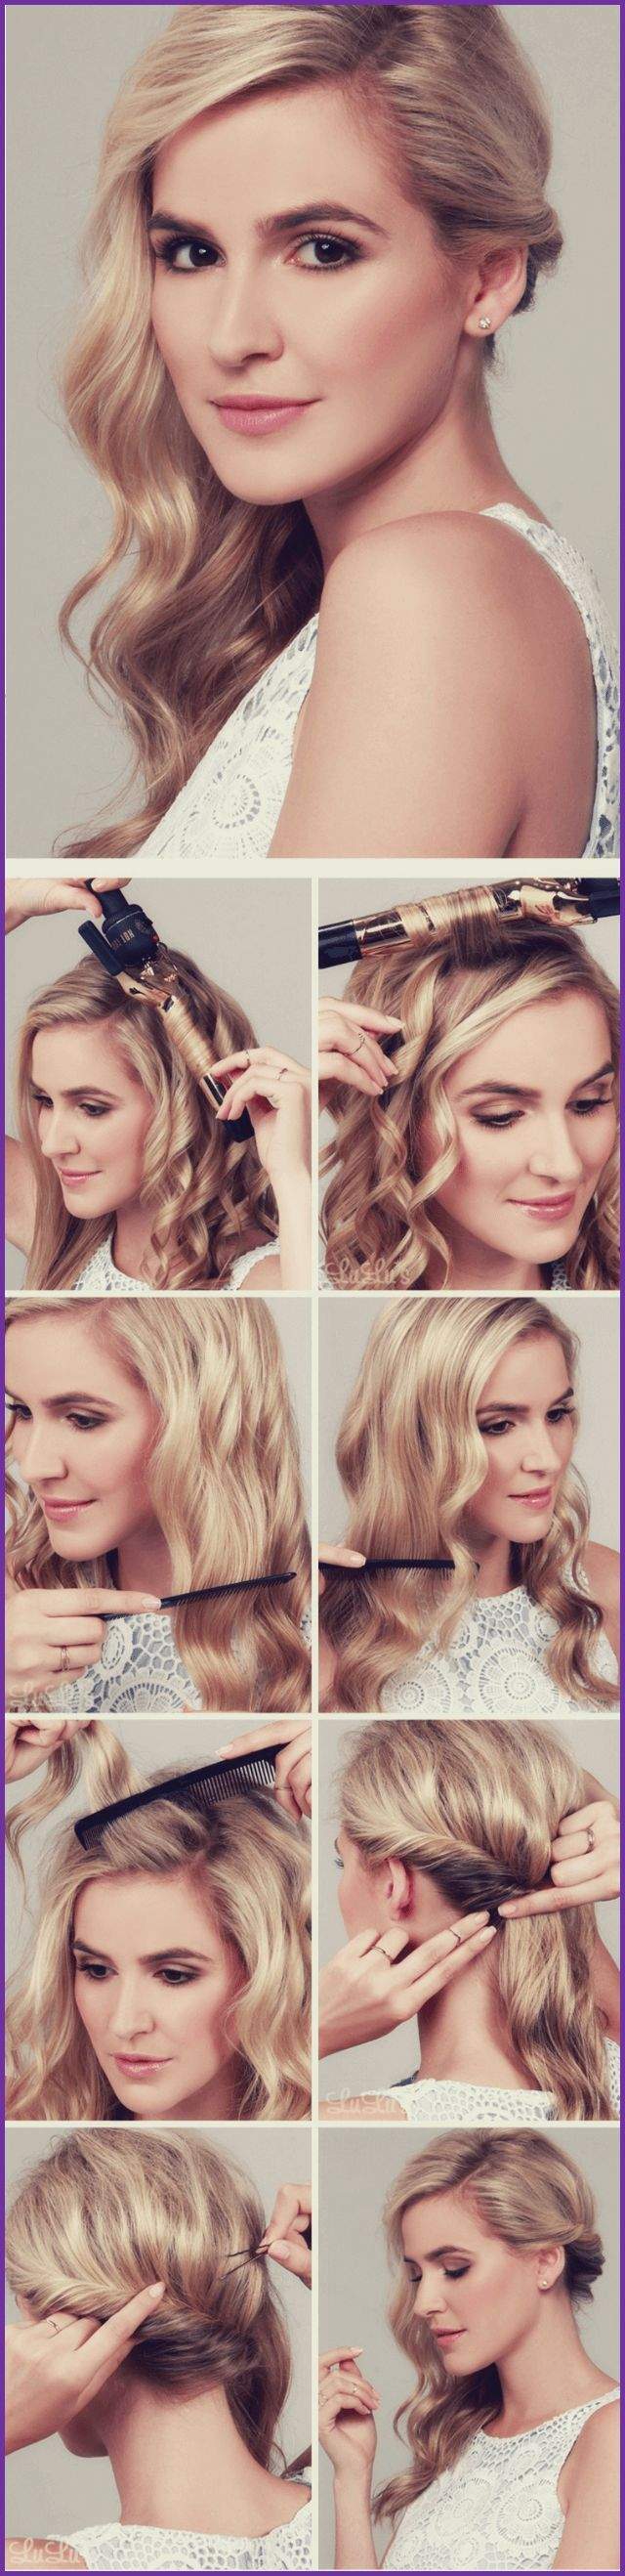 Thi low maintenance, yet gorgeous hairstyle will look good for any event.